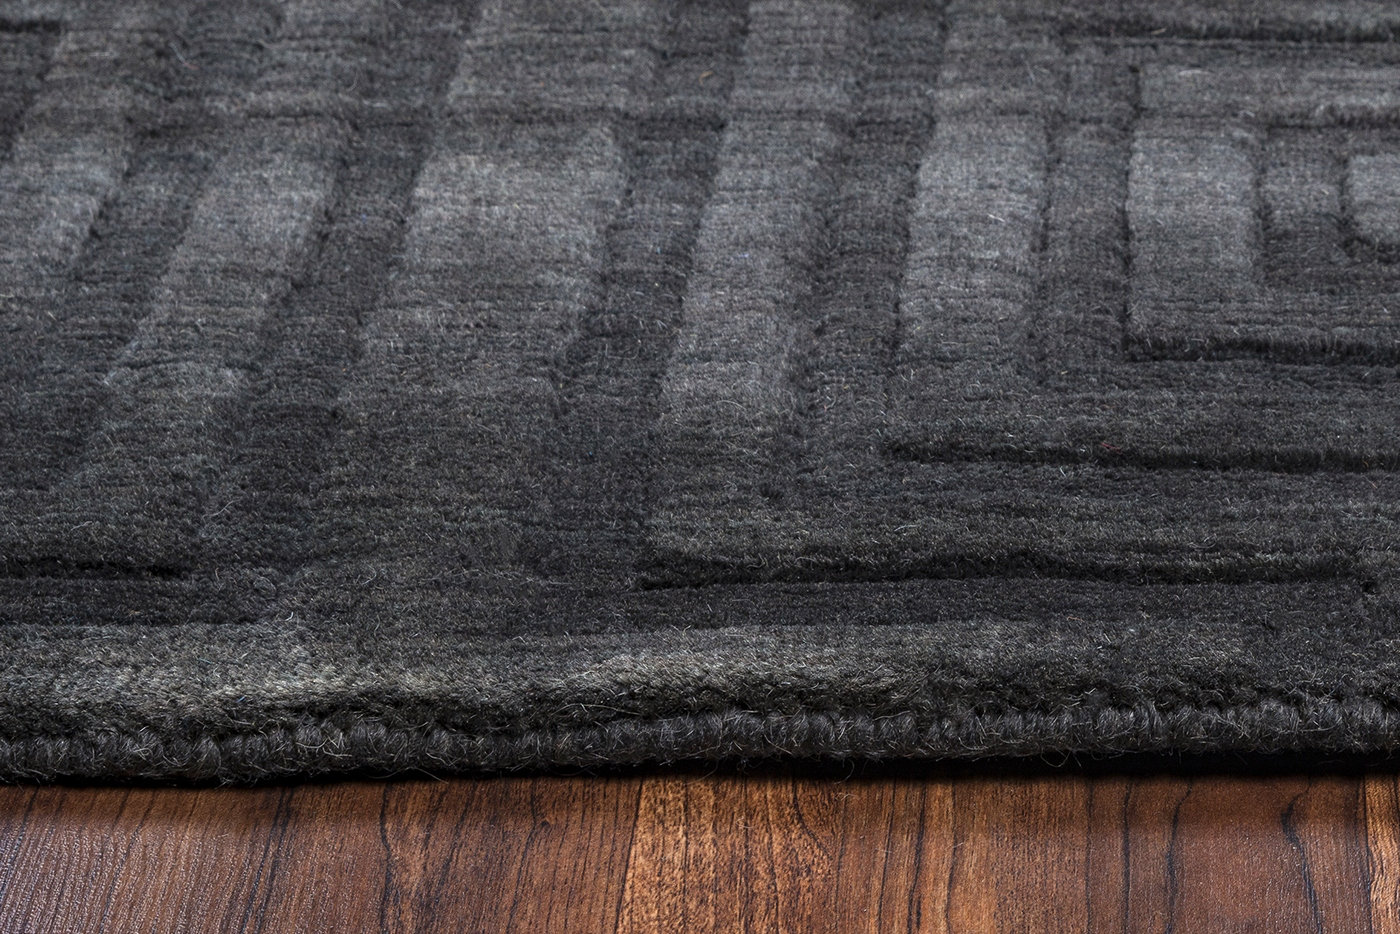 Uptown Faded Concentric Squares Wool Area Rug In Charcoal